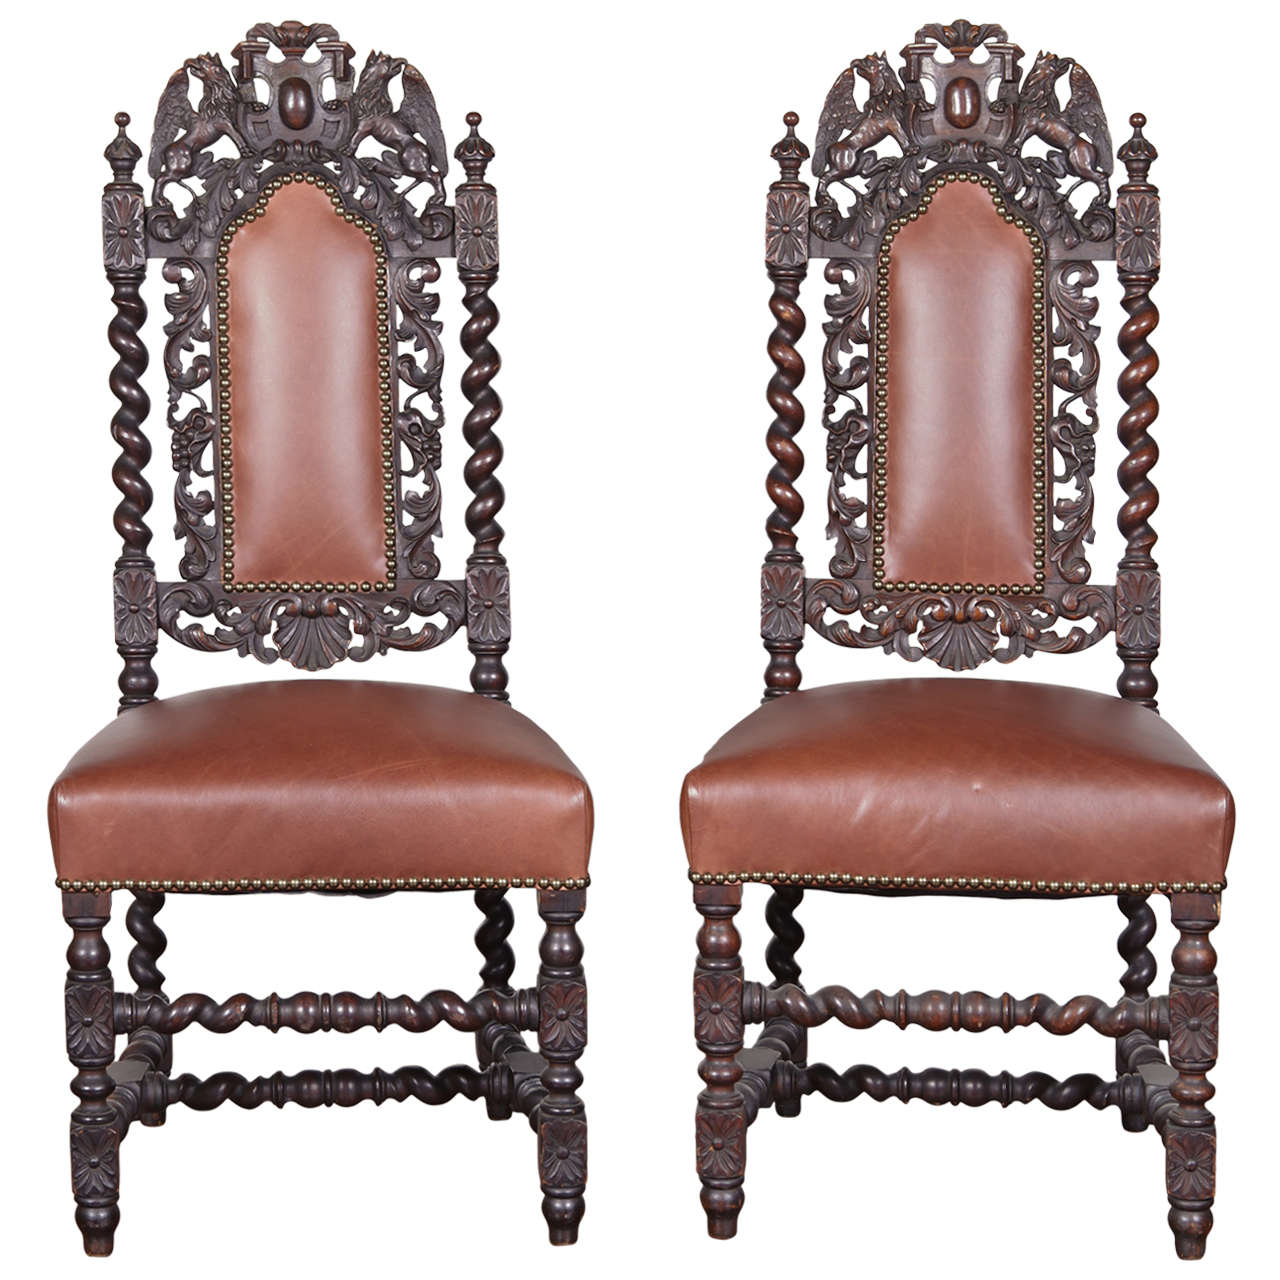 Pair of spanish baroque style side chairs at 1stdibs for Spanish baroque furniture